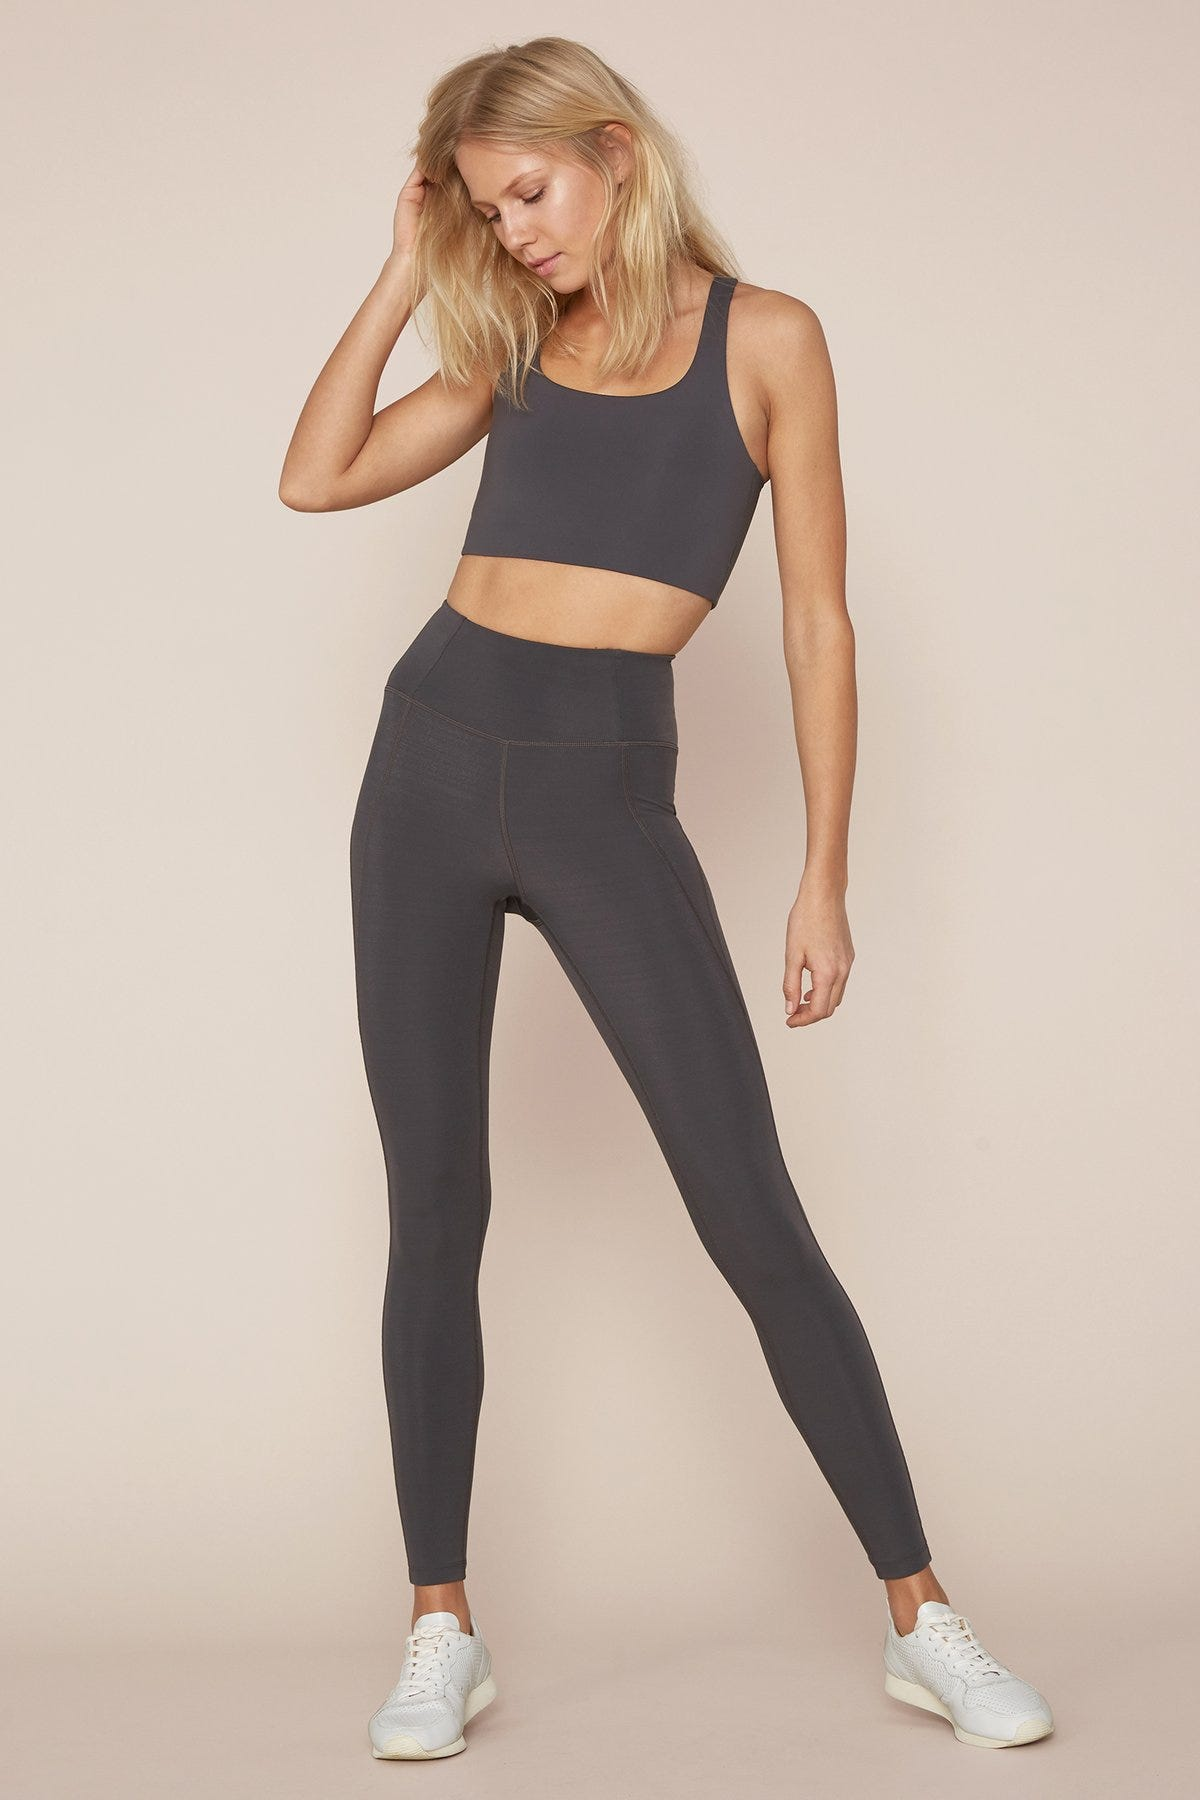 3d96b2f61f762c Girlfriend Collective Review Of LITE Workout Leggings